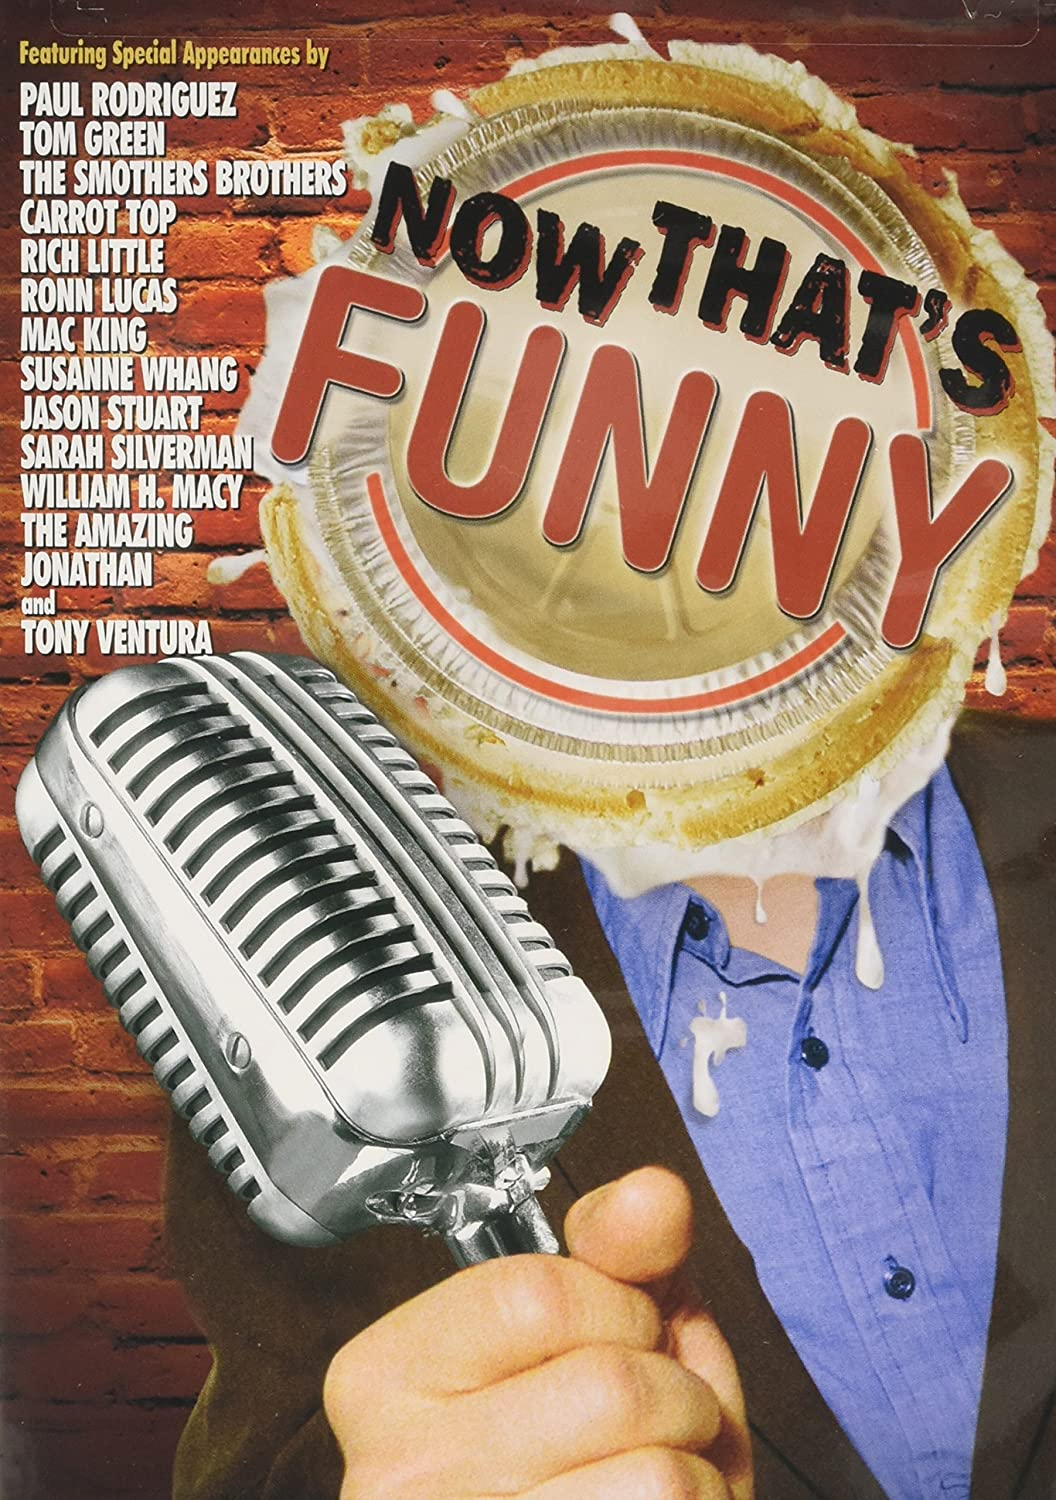 Amazon.com: Now That's Funny: Andy Dick, Carrot Top, Tom Green: Movies & TV